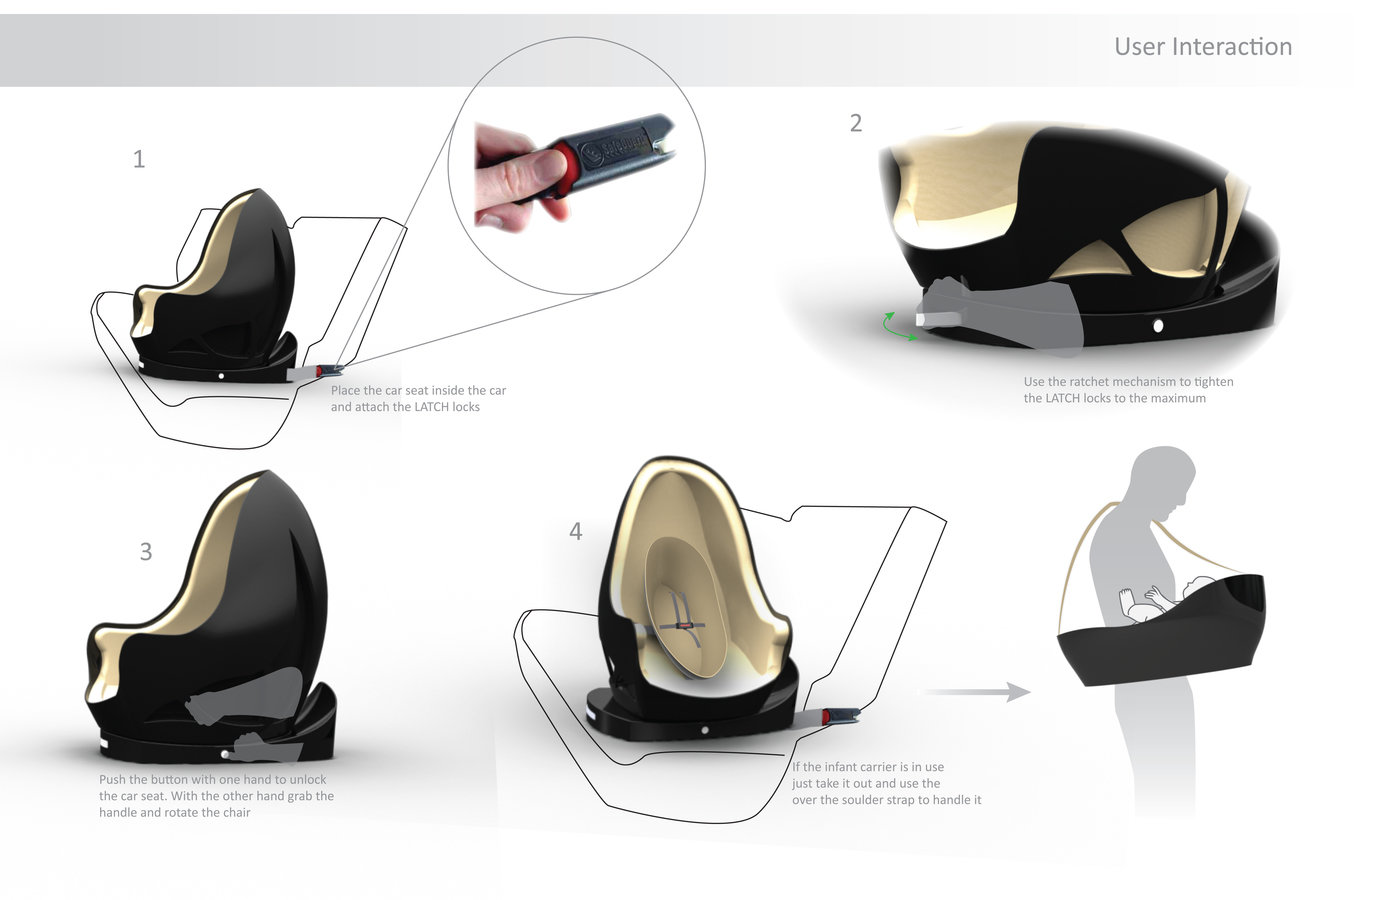 Child Car Seat Product Design By Jose Diaz Oldenburg At Coroflot Com